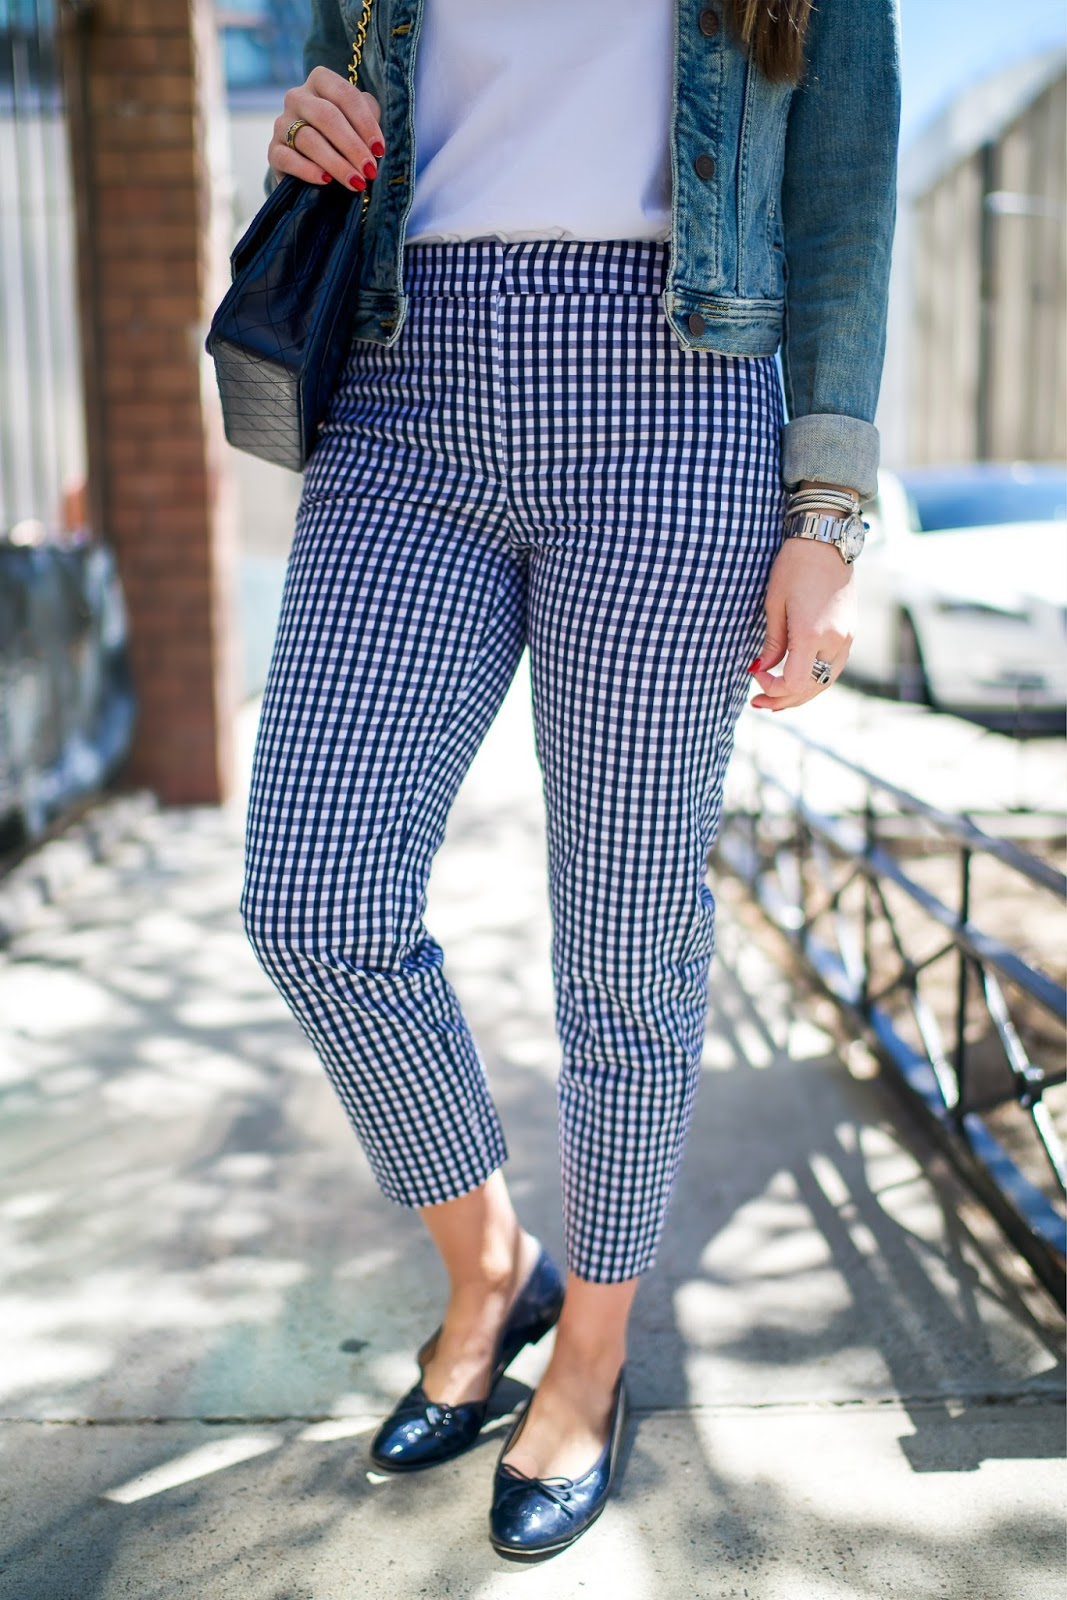 Gingham Pants for Work by popular New York fashion blogger, Covering the Bases.